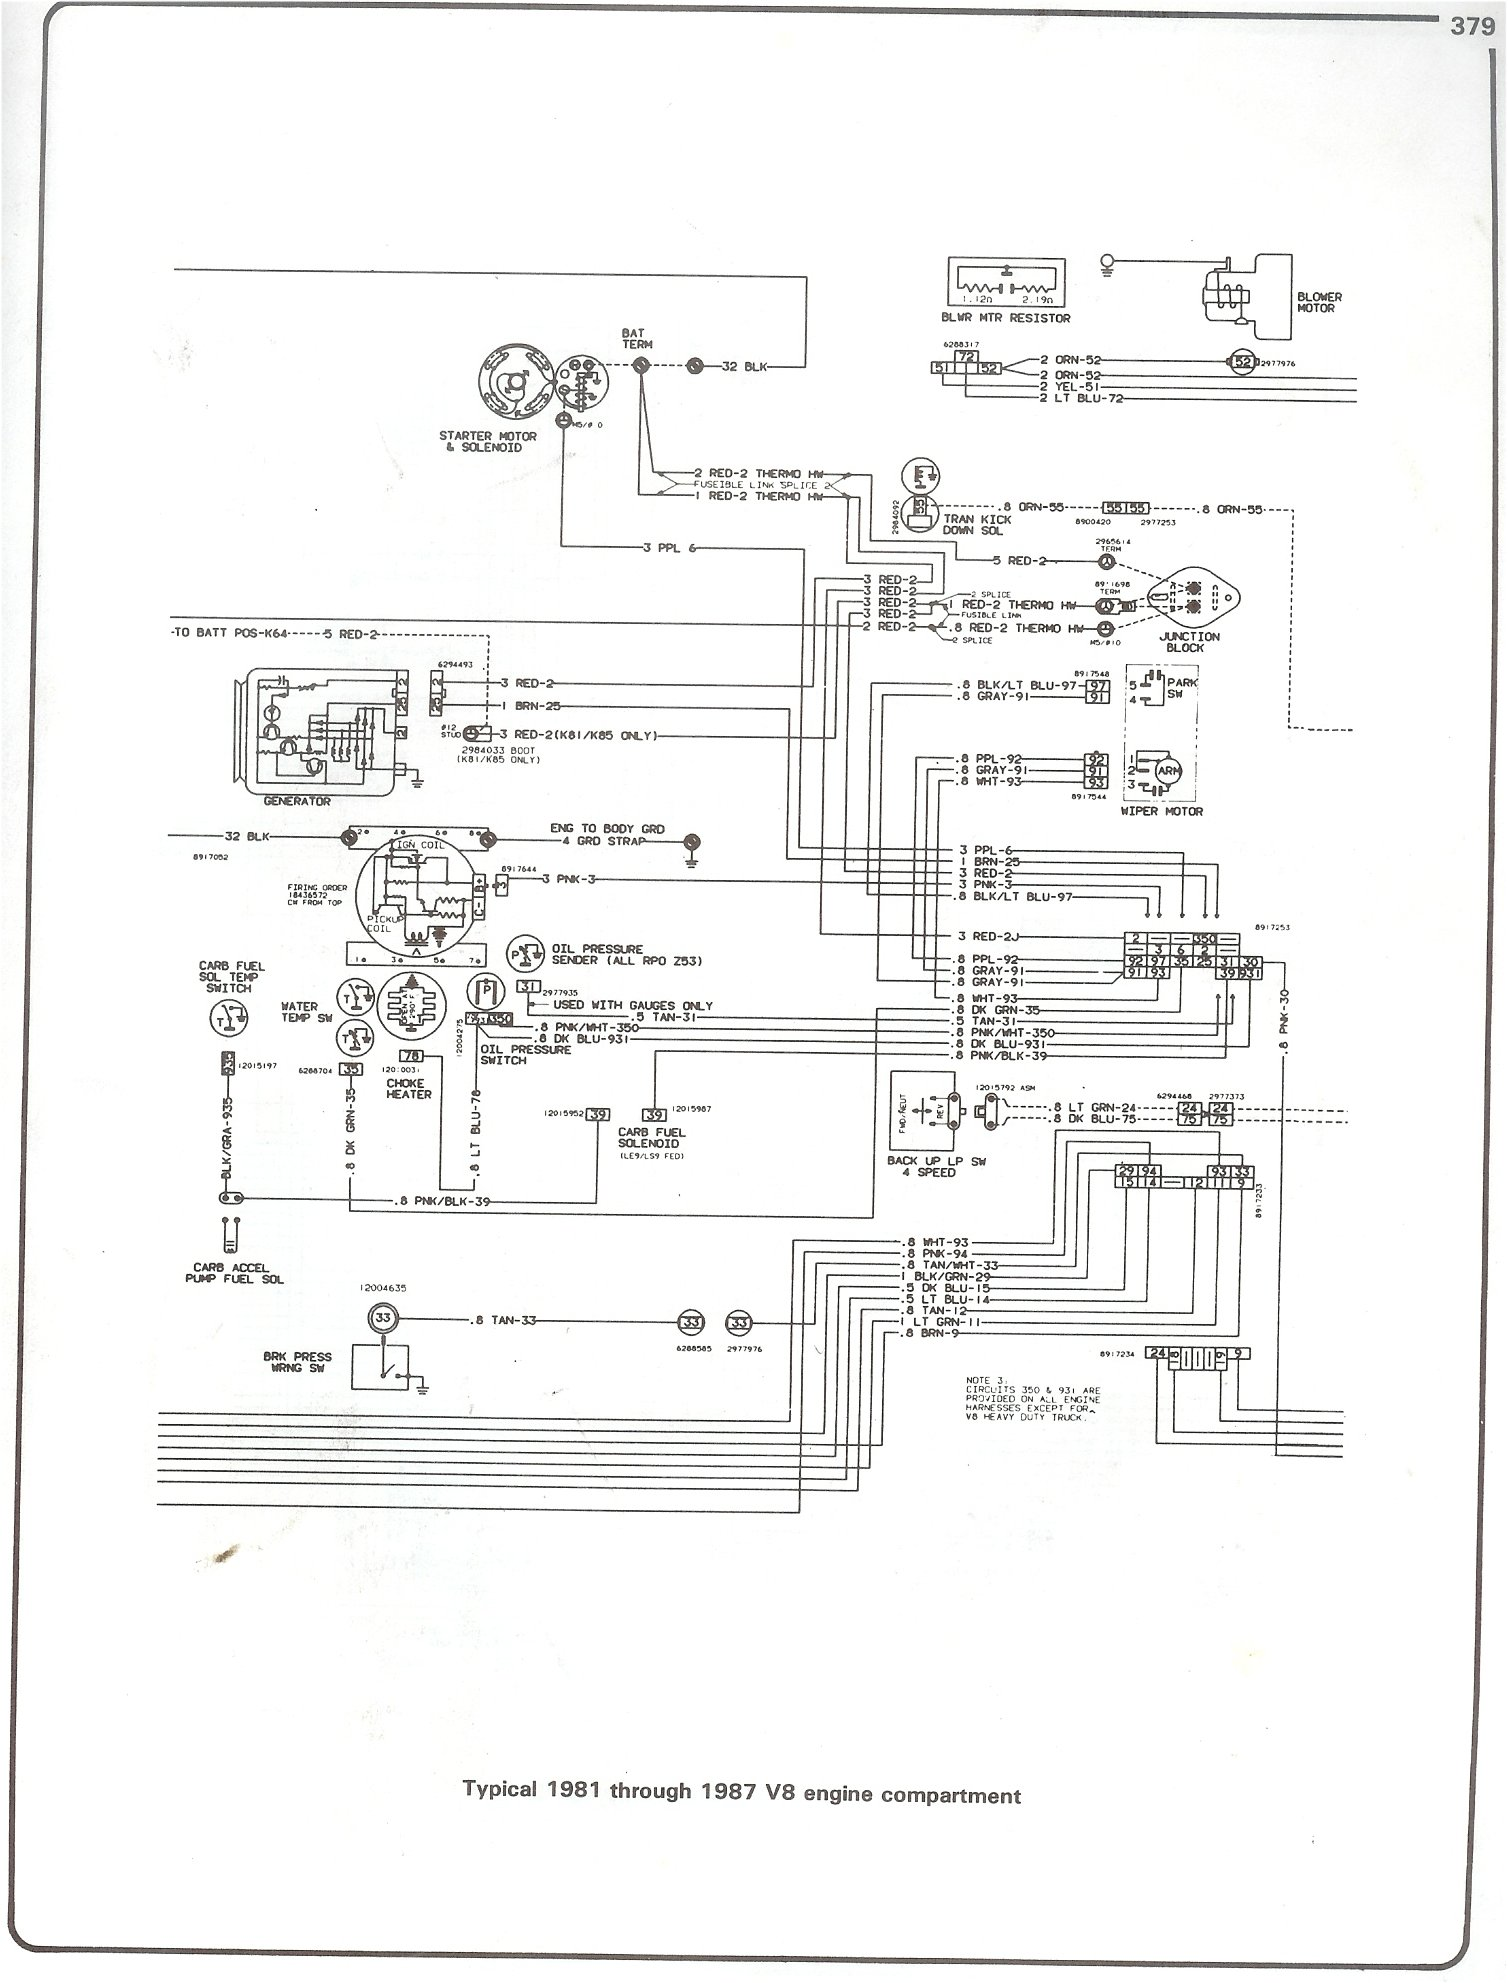 wiring diagram 81 chevy truck all wiring diagram 1970 Chevy C10 Wiring-Diagram